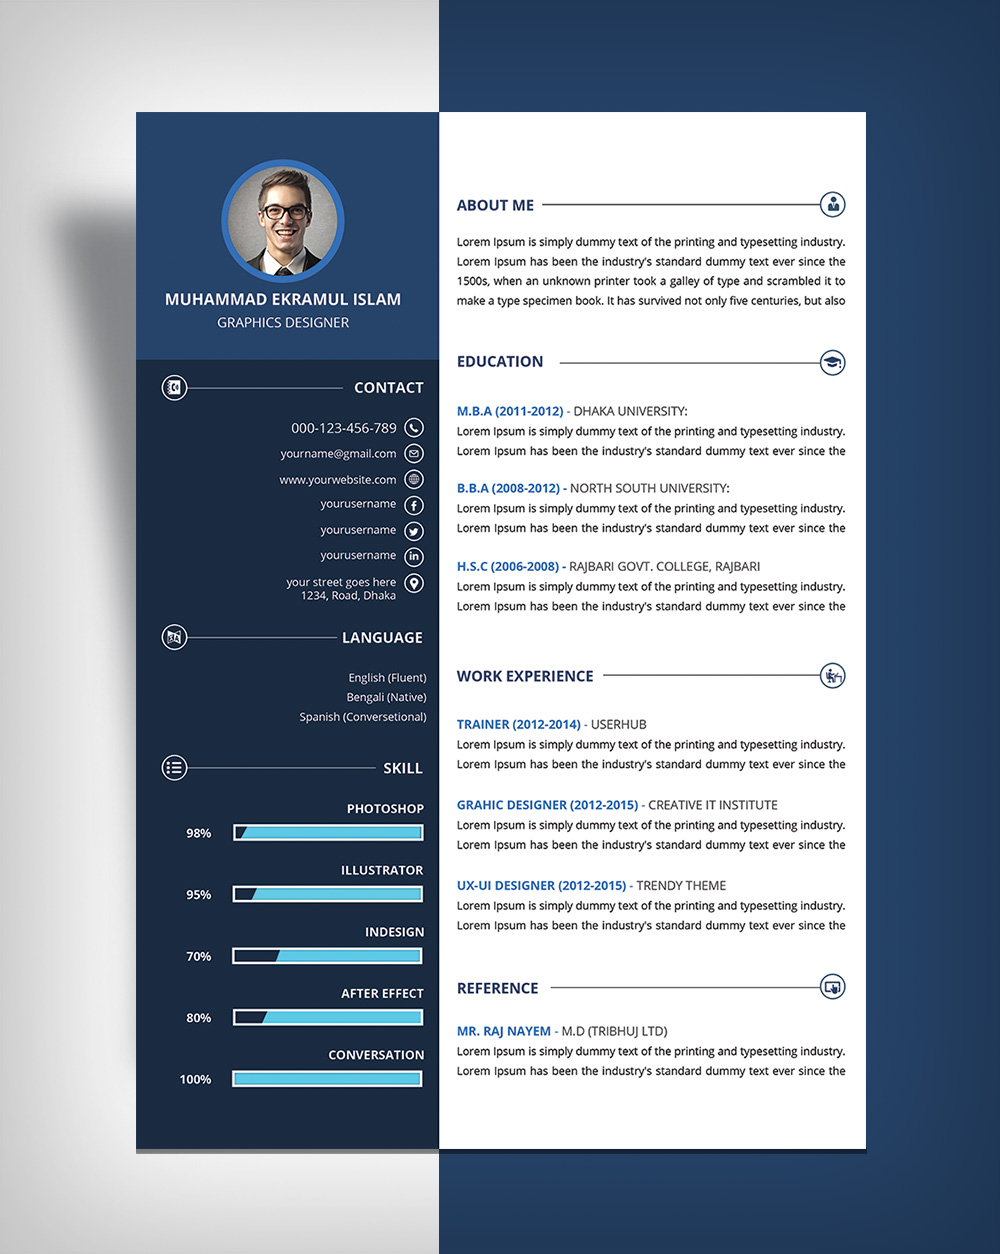 free beautiful resume cv design template psd file - Free Resume Design Templates